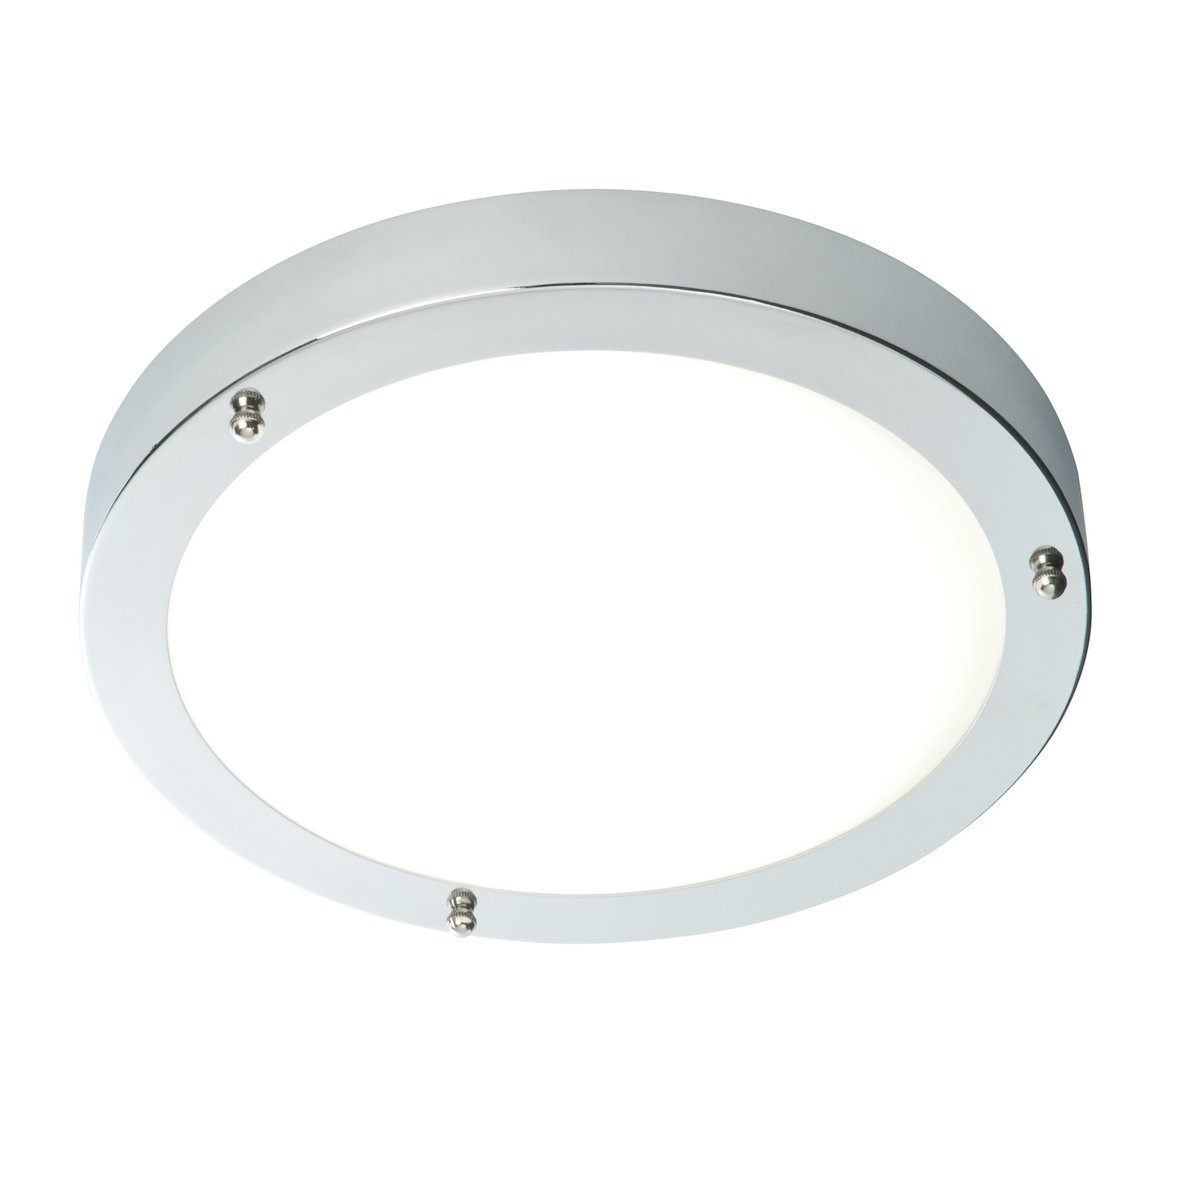 Modern IP44 Rated Flush Round Chrome Plated 300mm Disc LED Bathroom Ceiling Light Fitting with Frosted Glass Shade Zone 2 [Energy Class A+] National Lighting